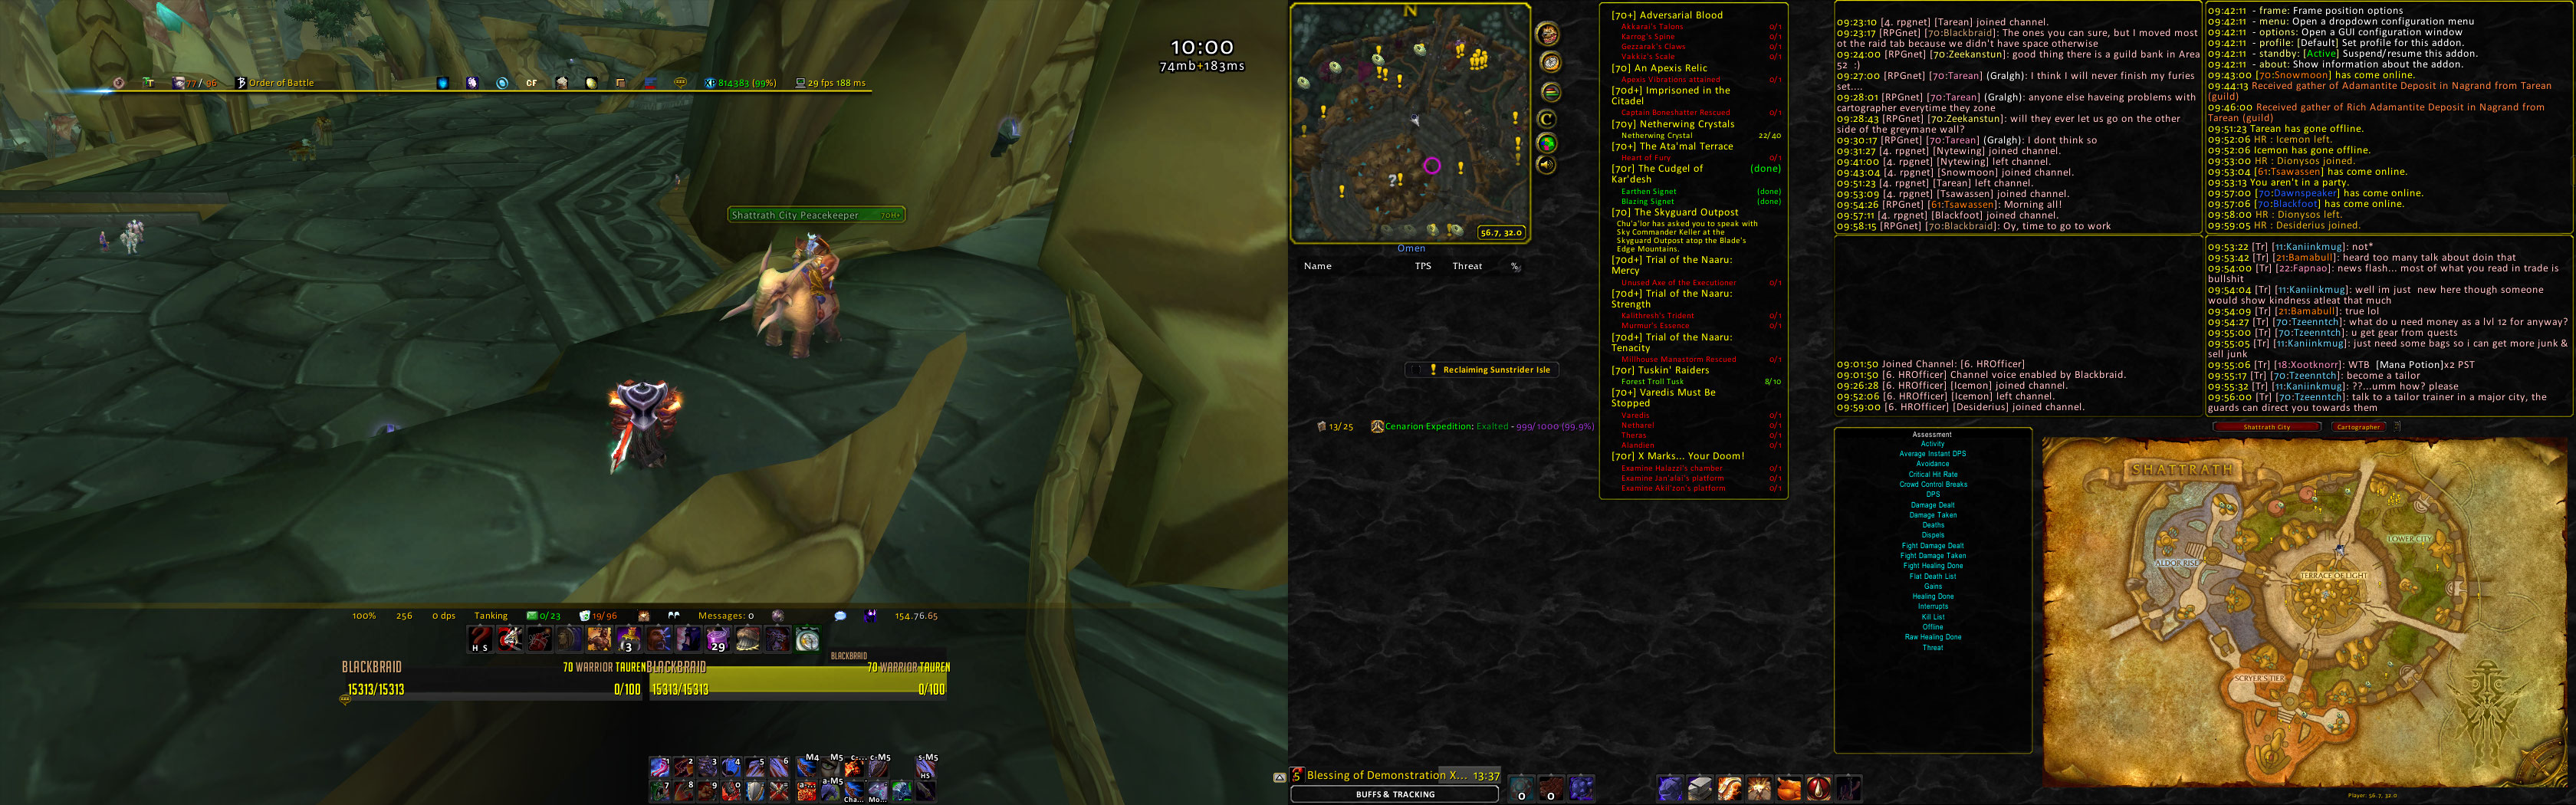 informant vanilla wow addon commands